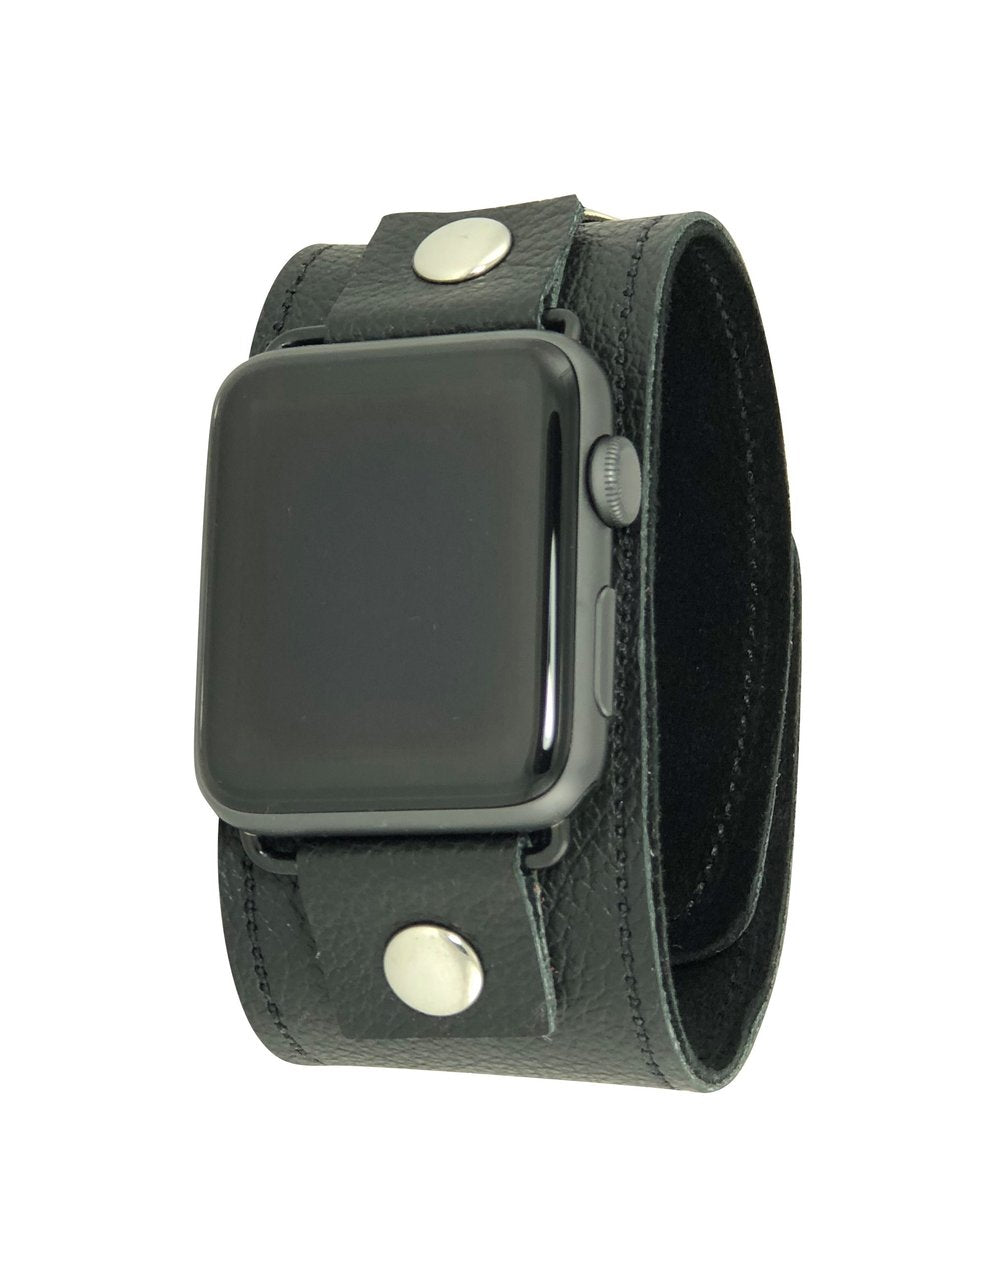 NAN Apple Watch Band - Black